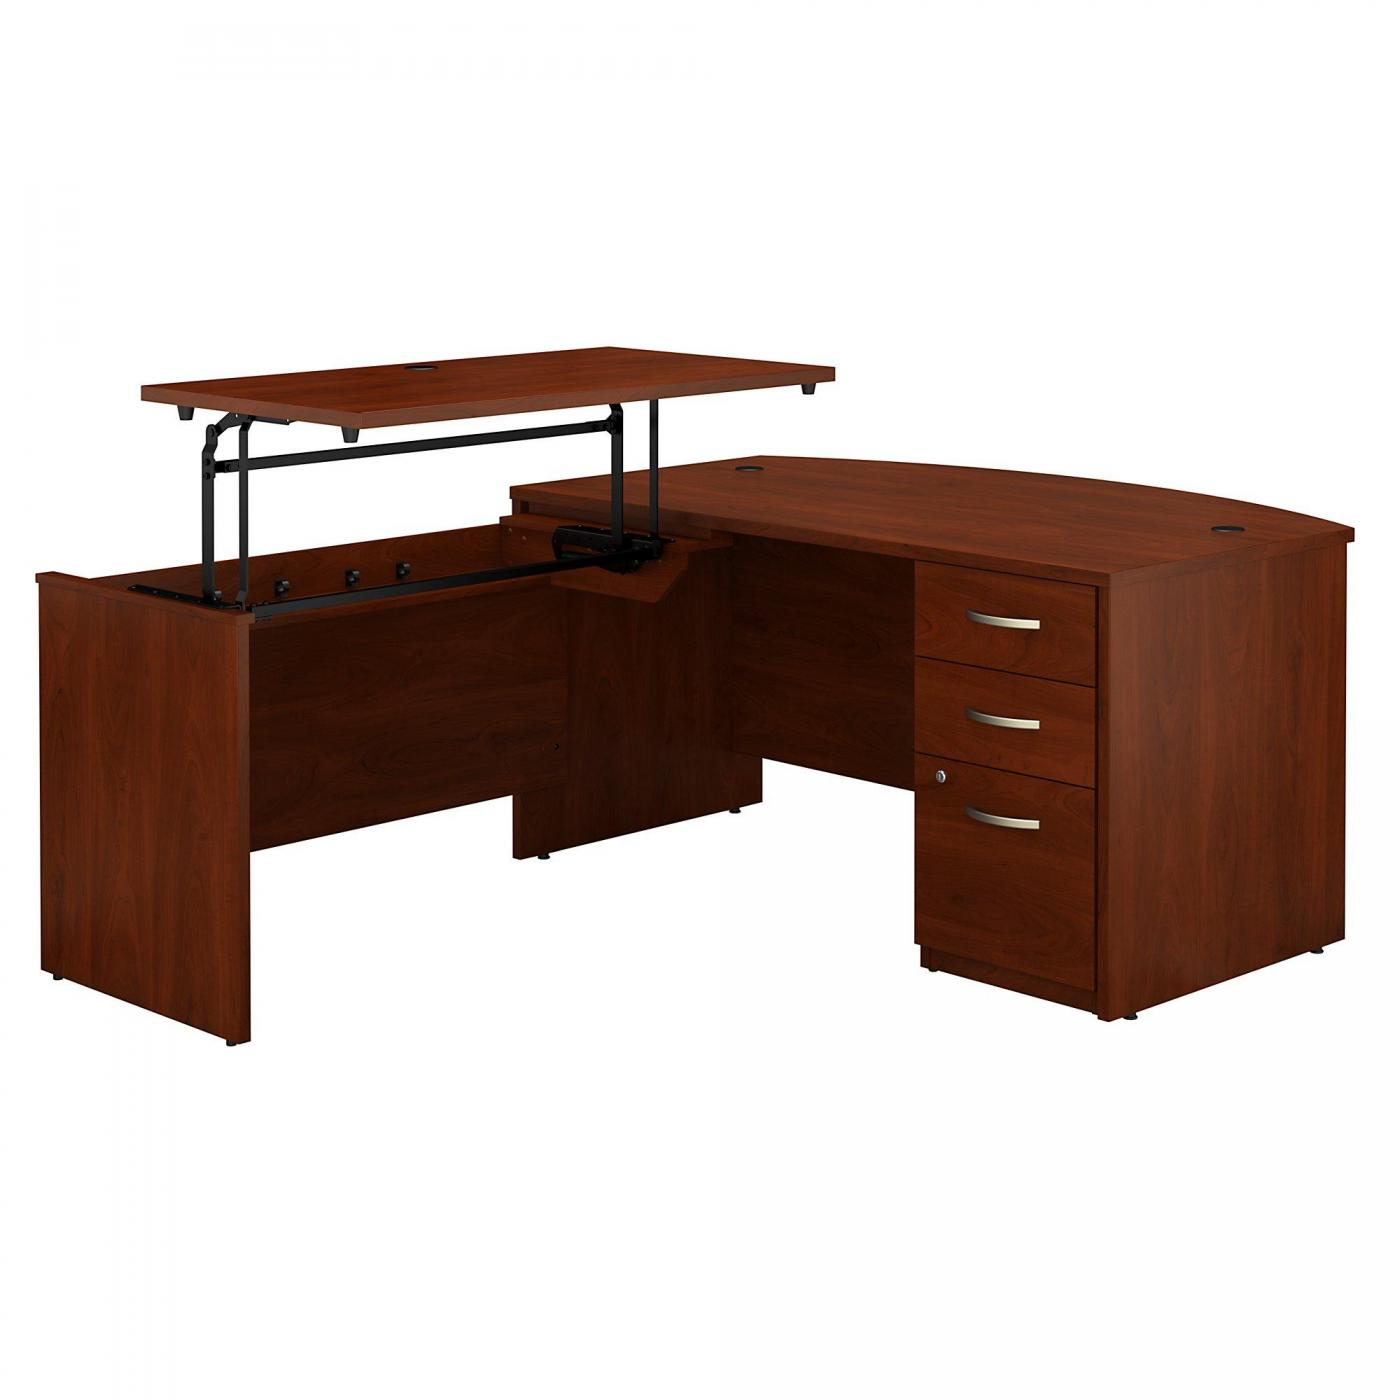 <font color=#c60><b>BUSH BUSINESS FURNITURE SERIES C ELITE 60W X 36D 3 POSITION SIT TO STAND BOW FRONT L SHAPED DESK WITH 3 DRAWER FILE CABINET. FREE SHIPPING</font></b>